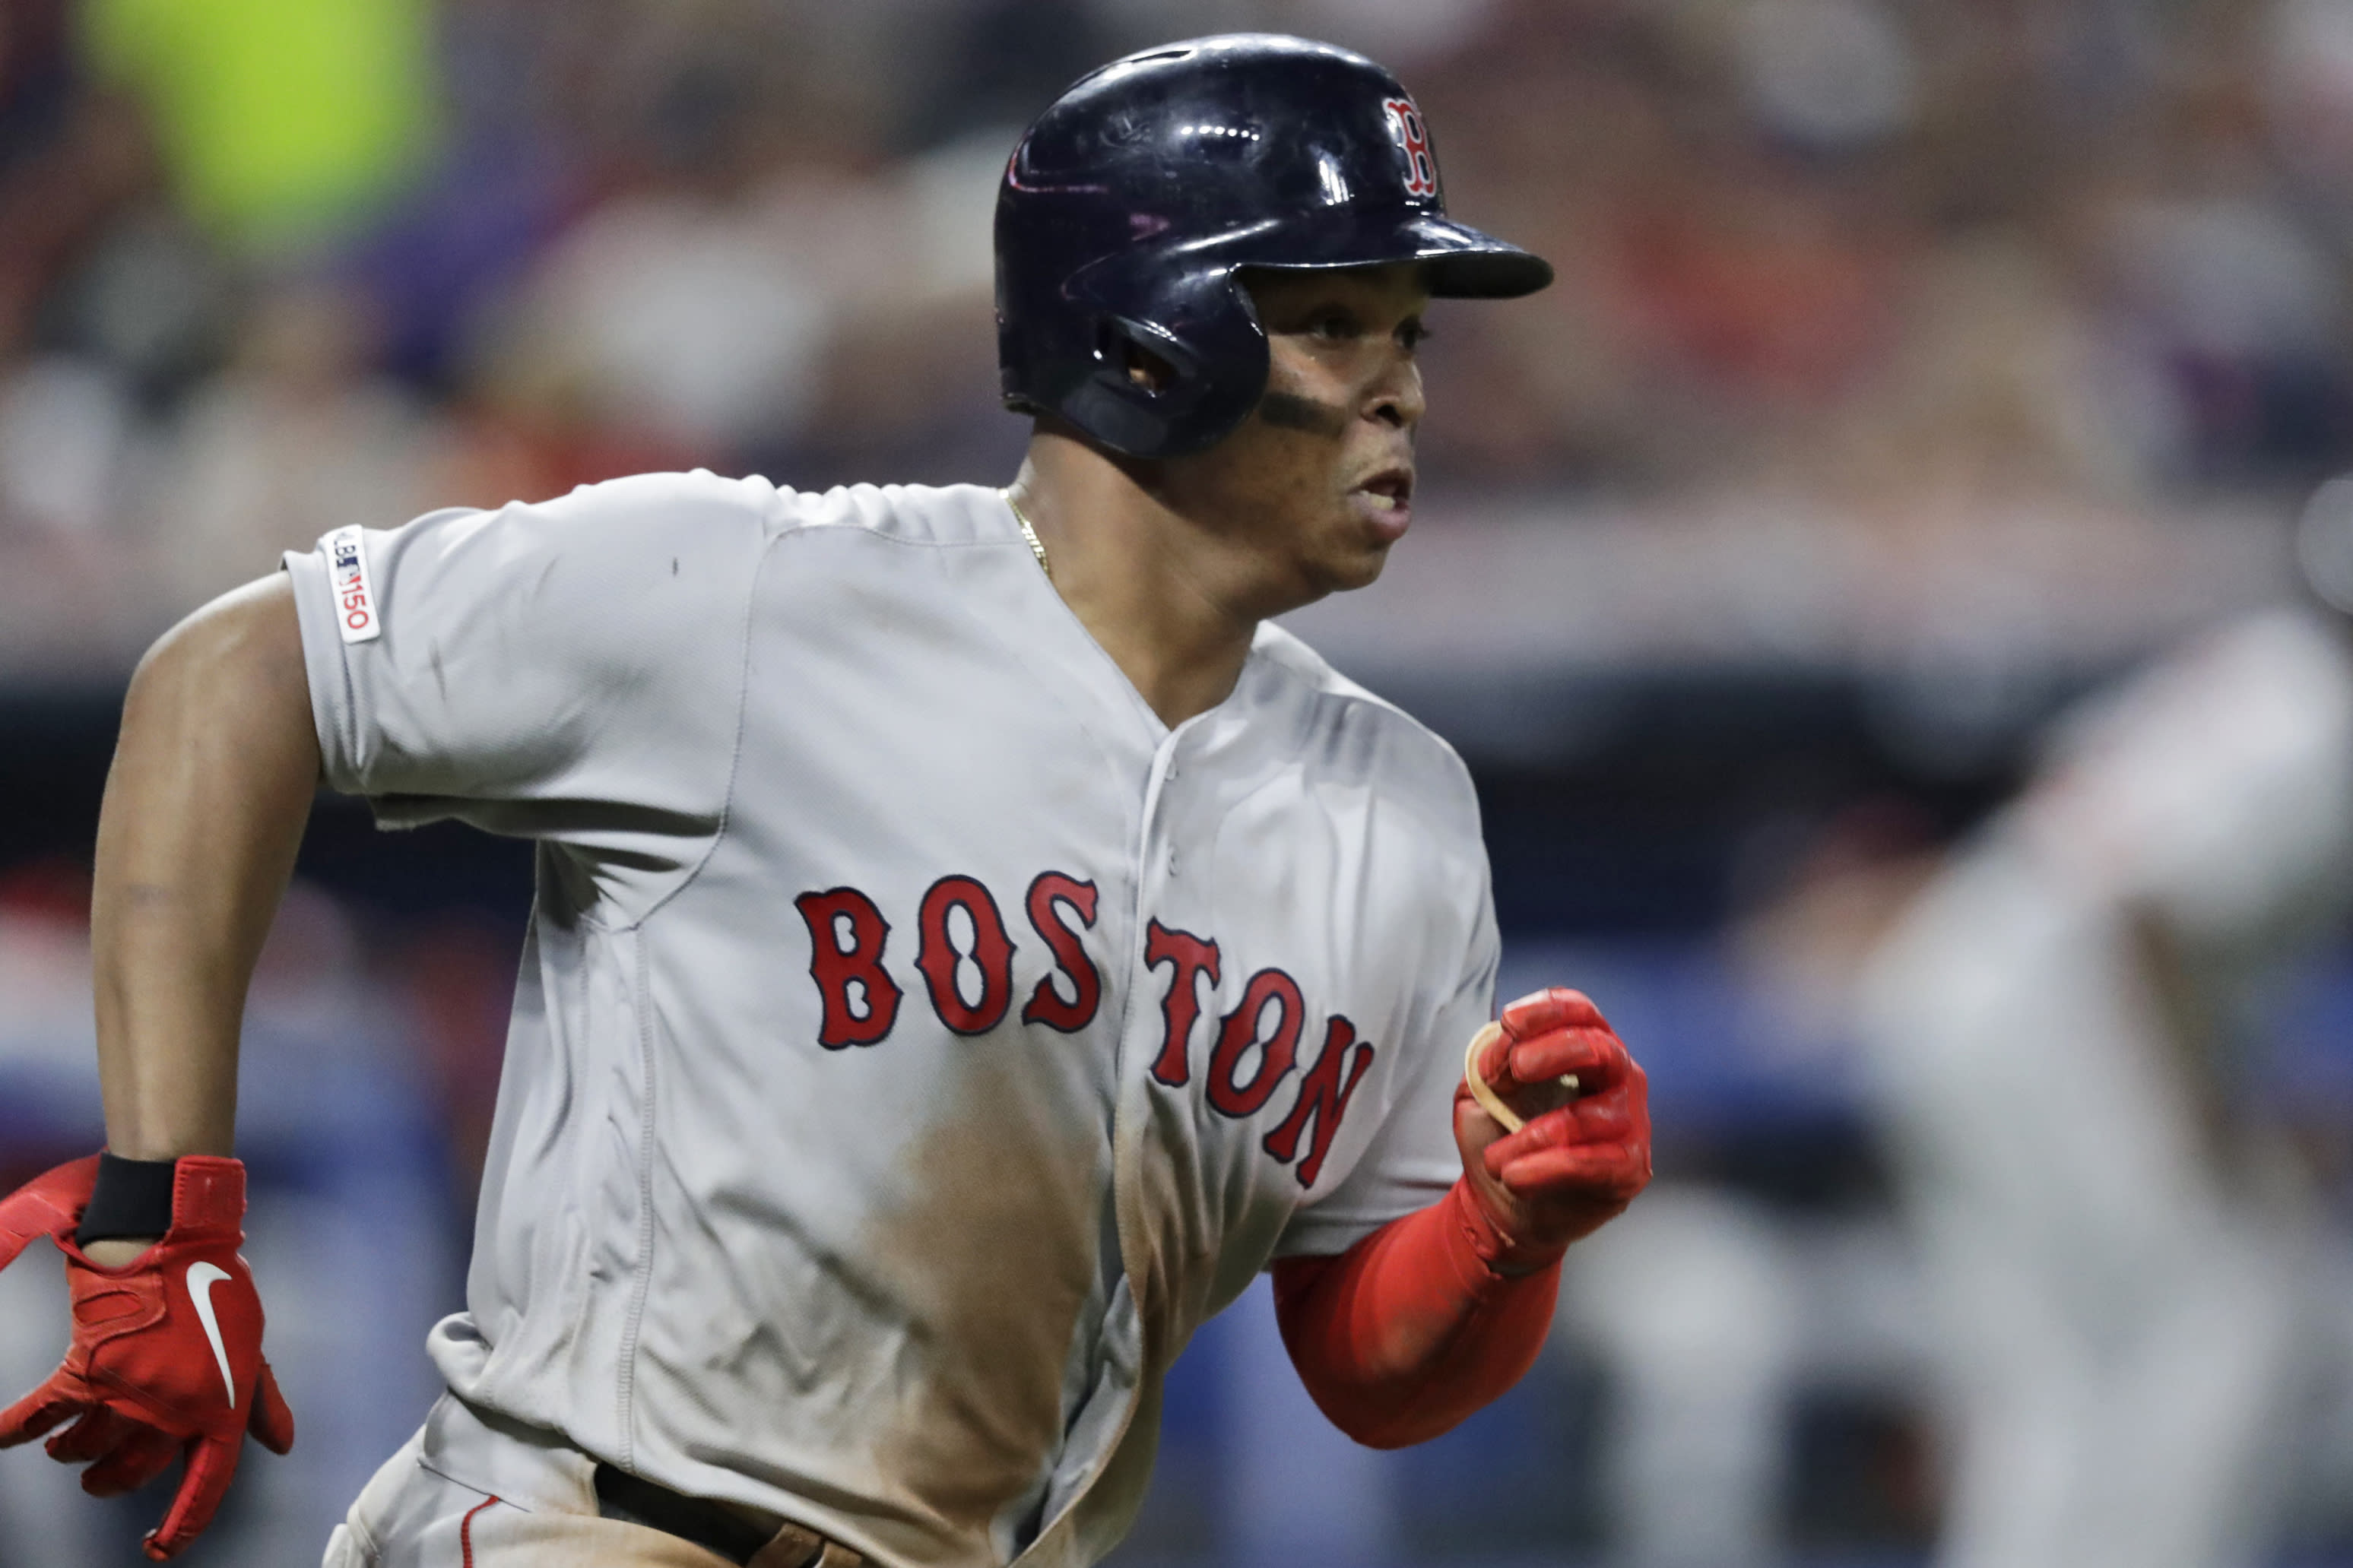 Boston's Devers sets record with 6 hits, 4 doubles in win